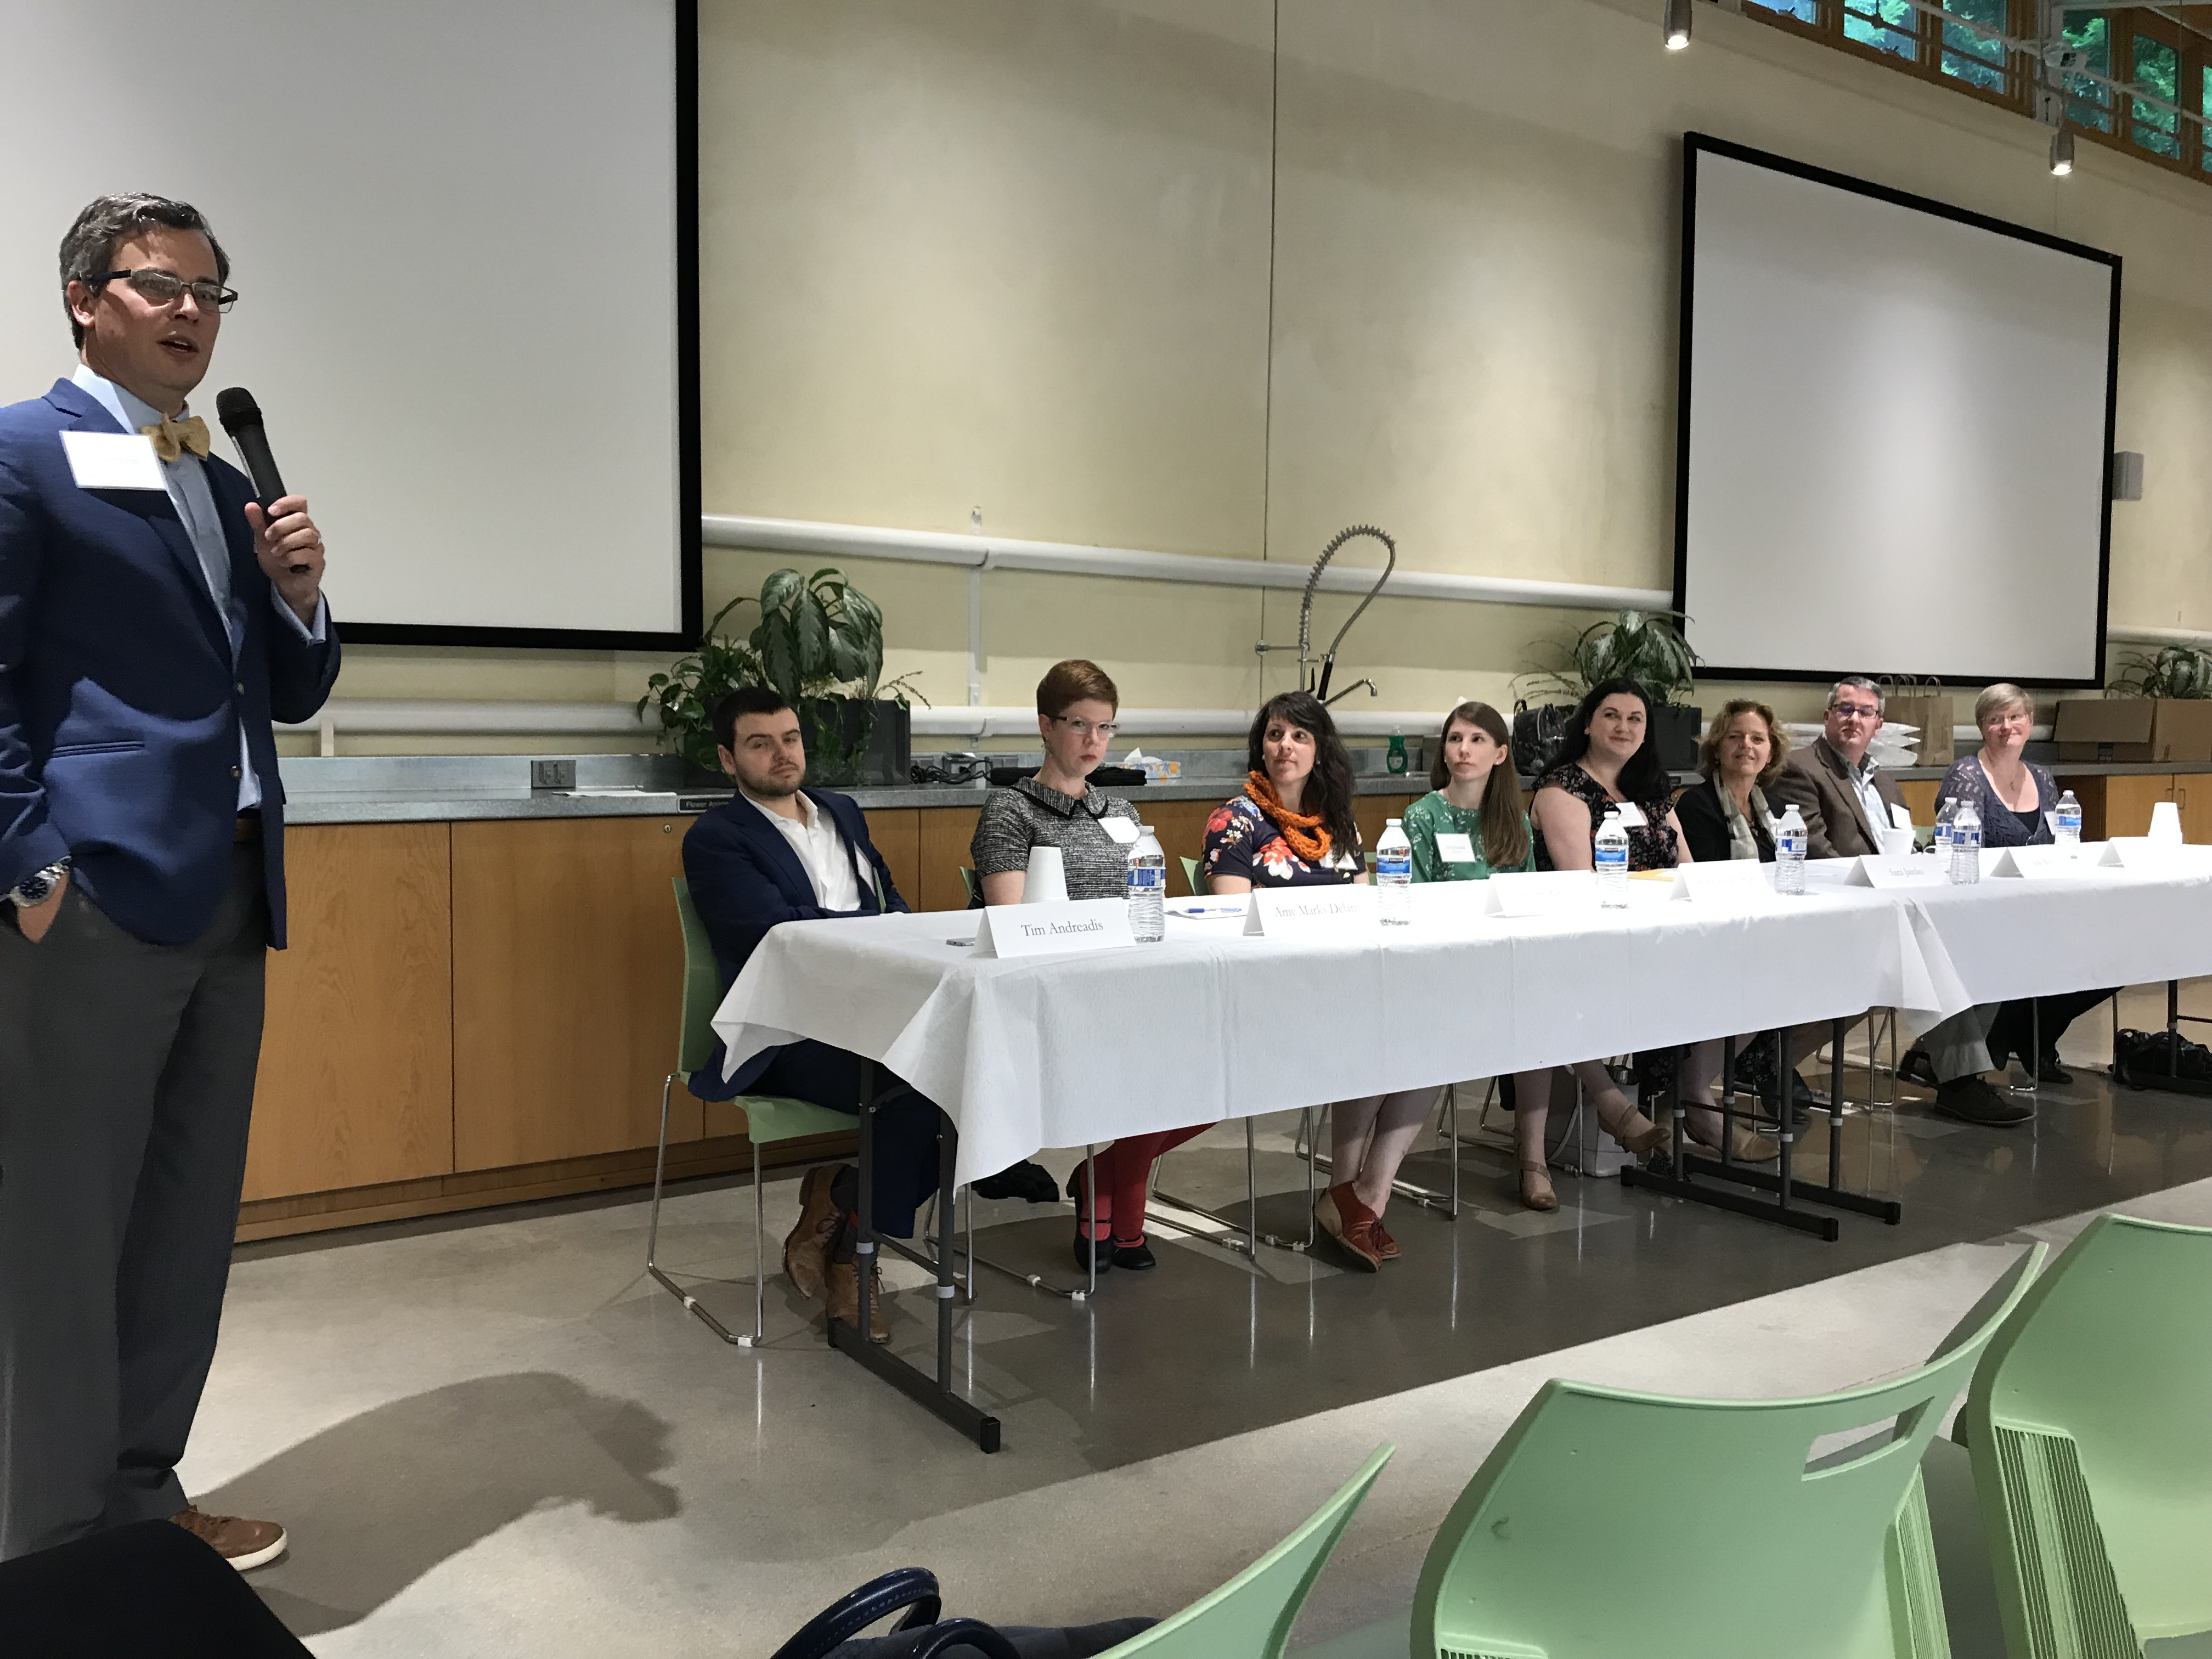 Panelists at the Society of Winterthur Fellows event (Delaware, USA) on Friday, 10 May 2019. Photo courtesy of Joyce Hill Stoner